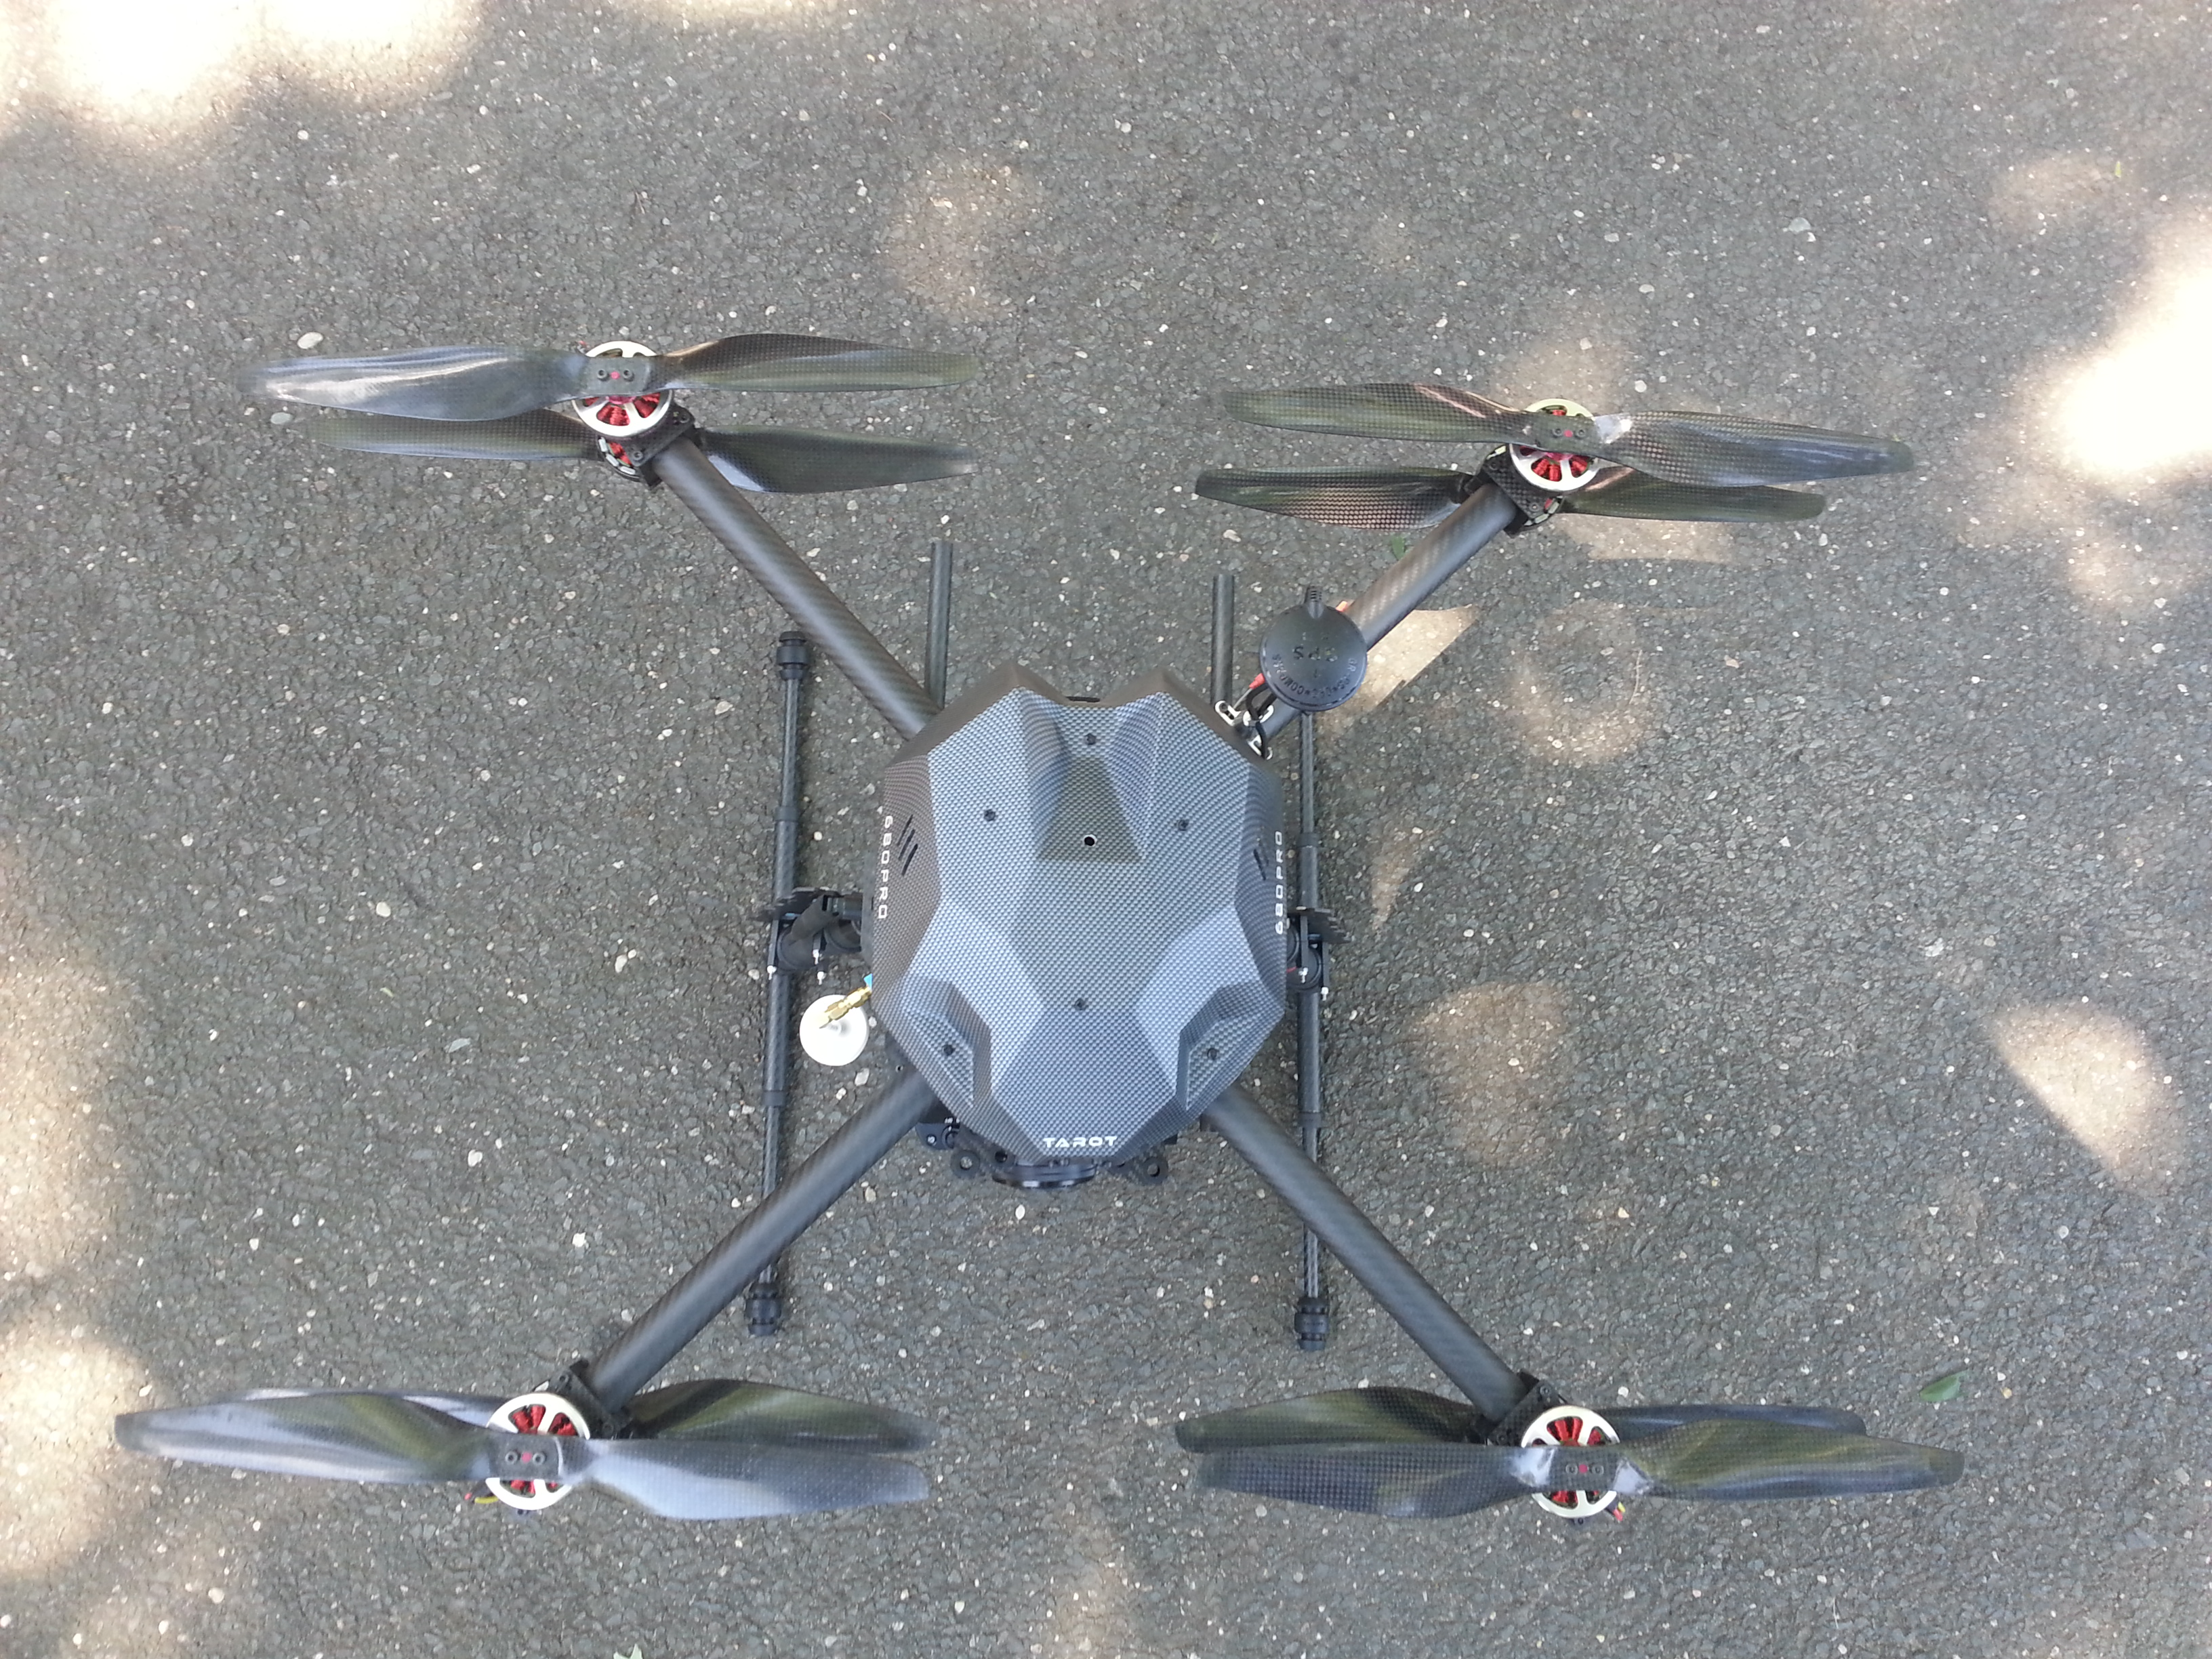 X8 Surveying Drone